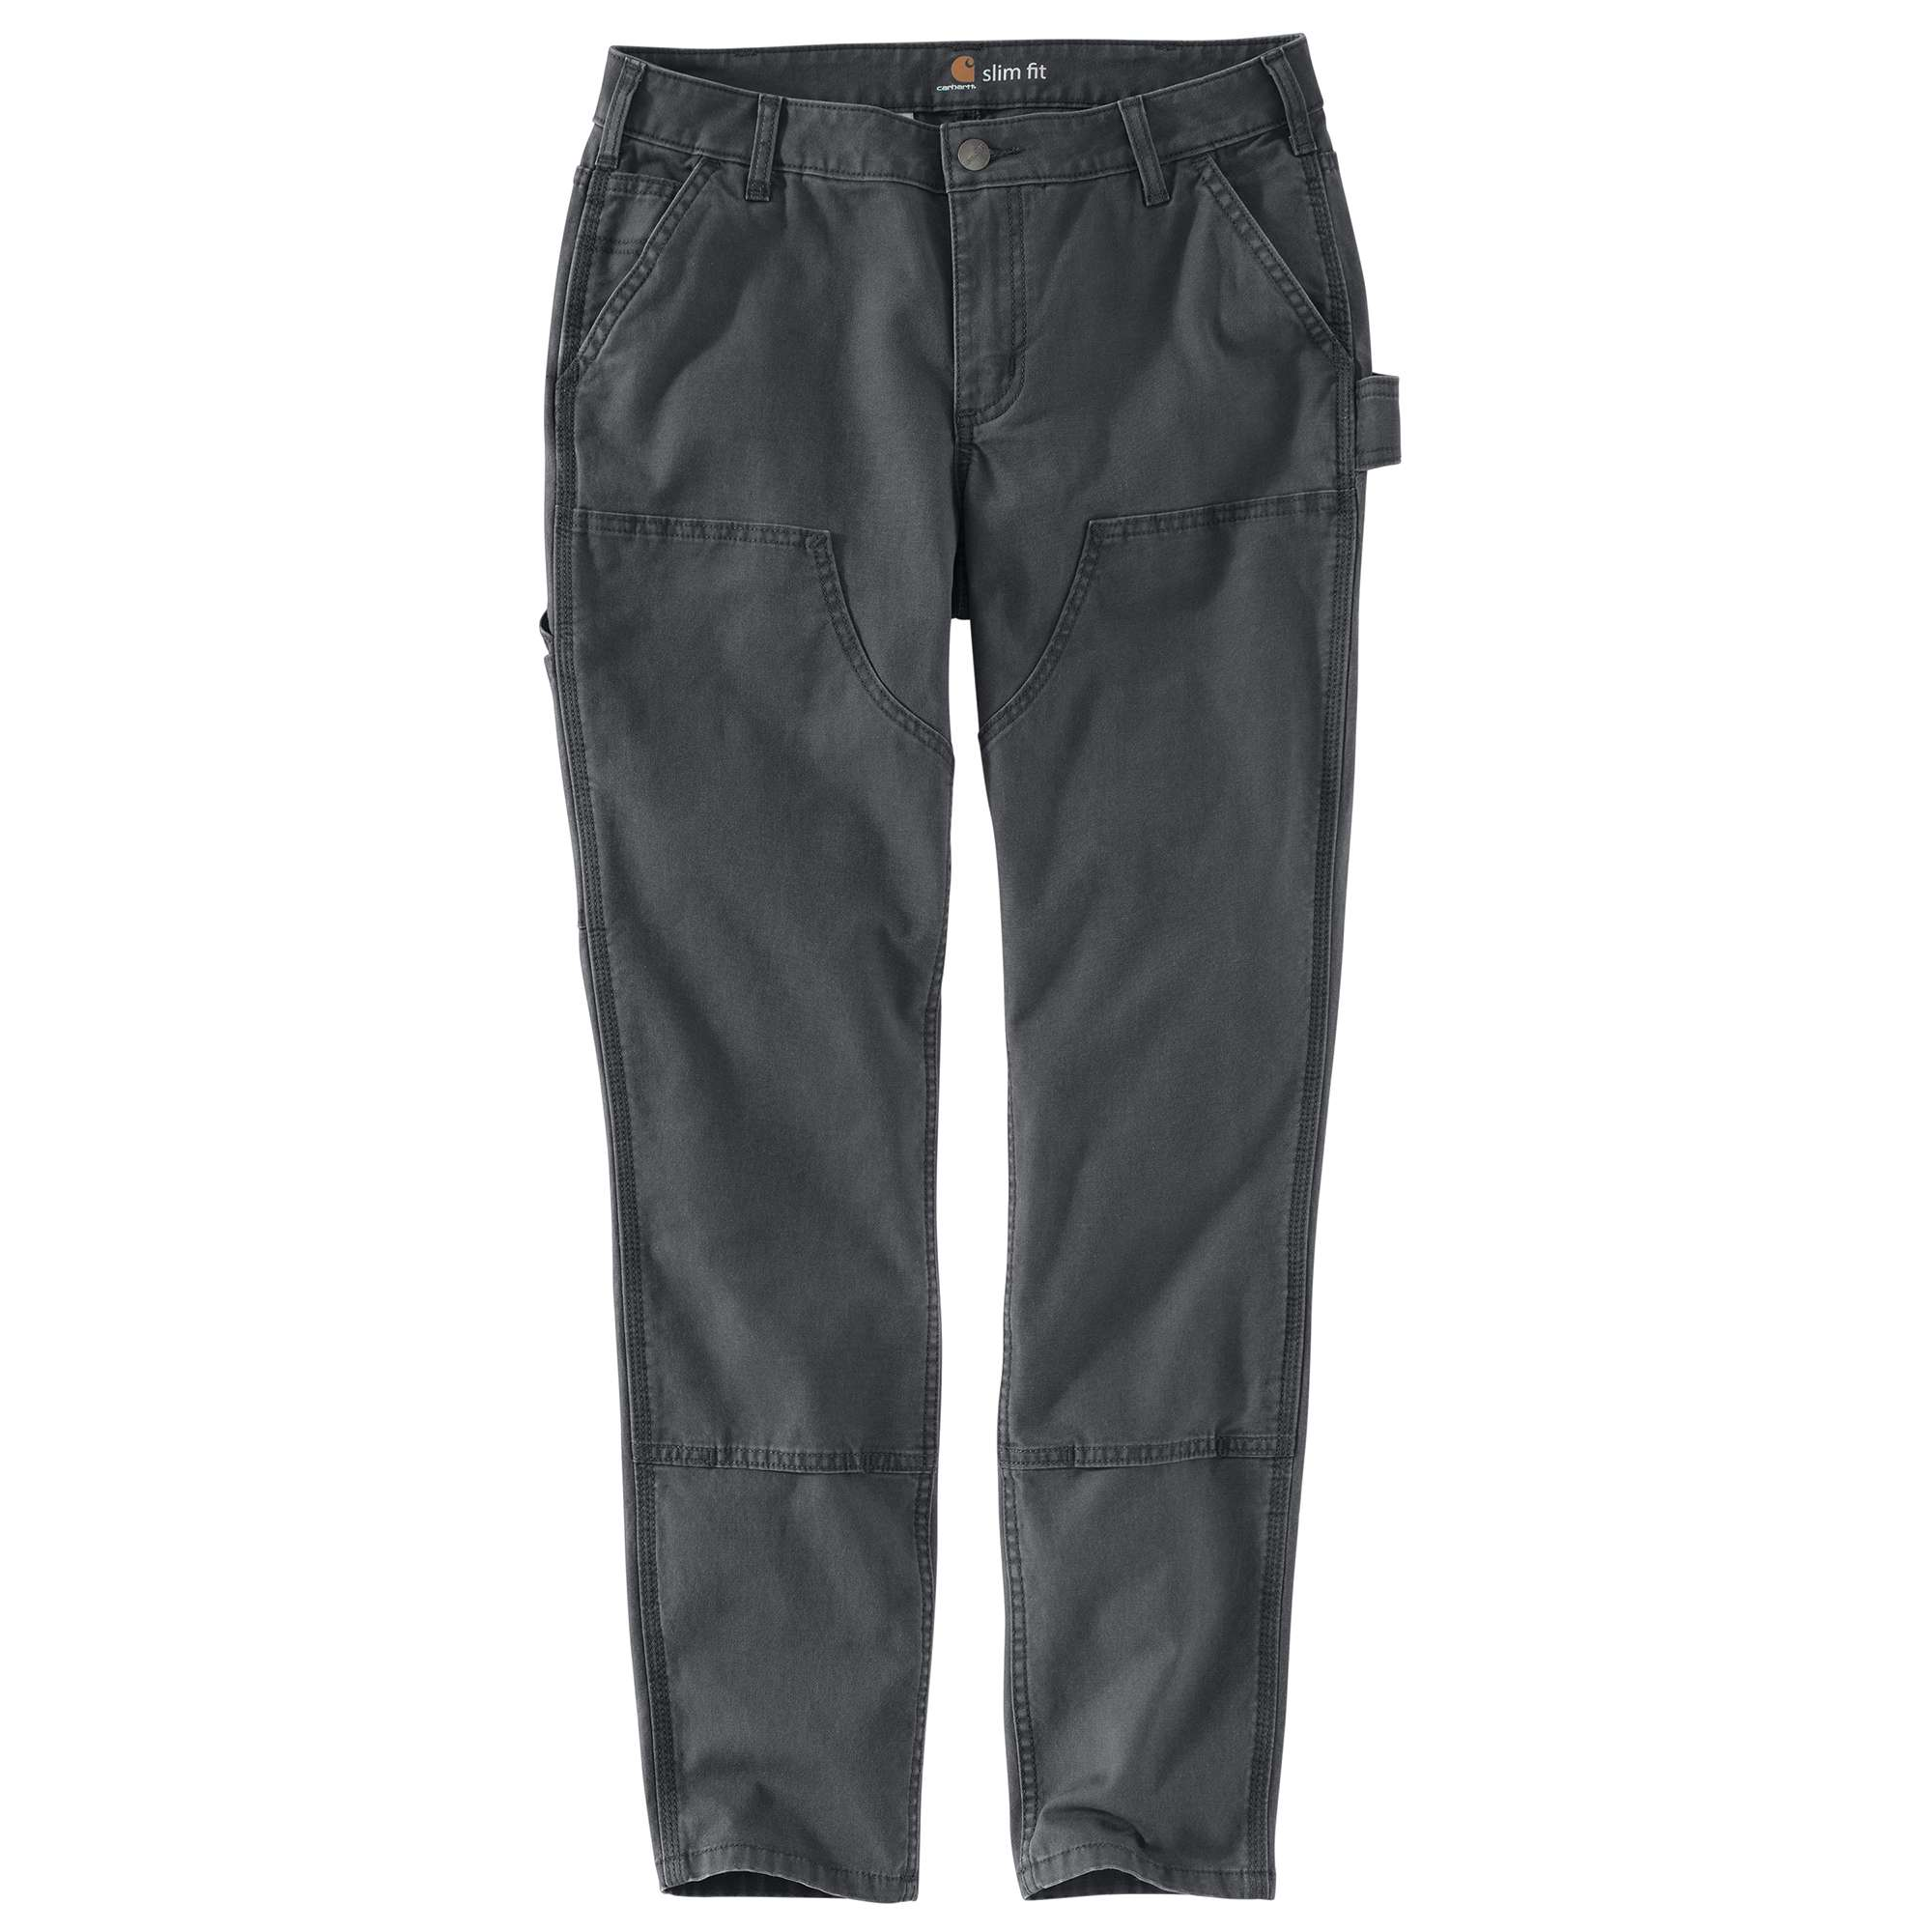 WOMEN'S SLIM-FIT CRAWFORD DOUBLE-FRONT PANT